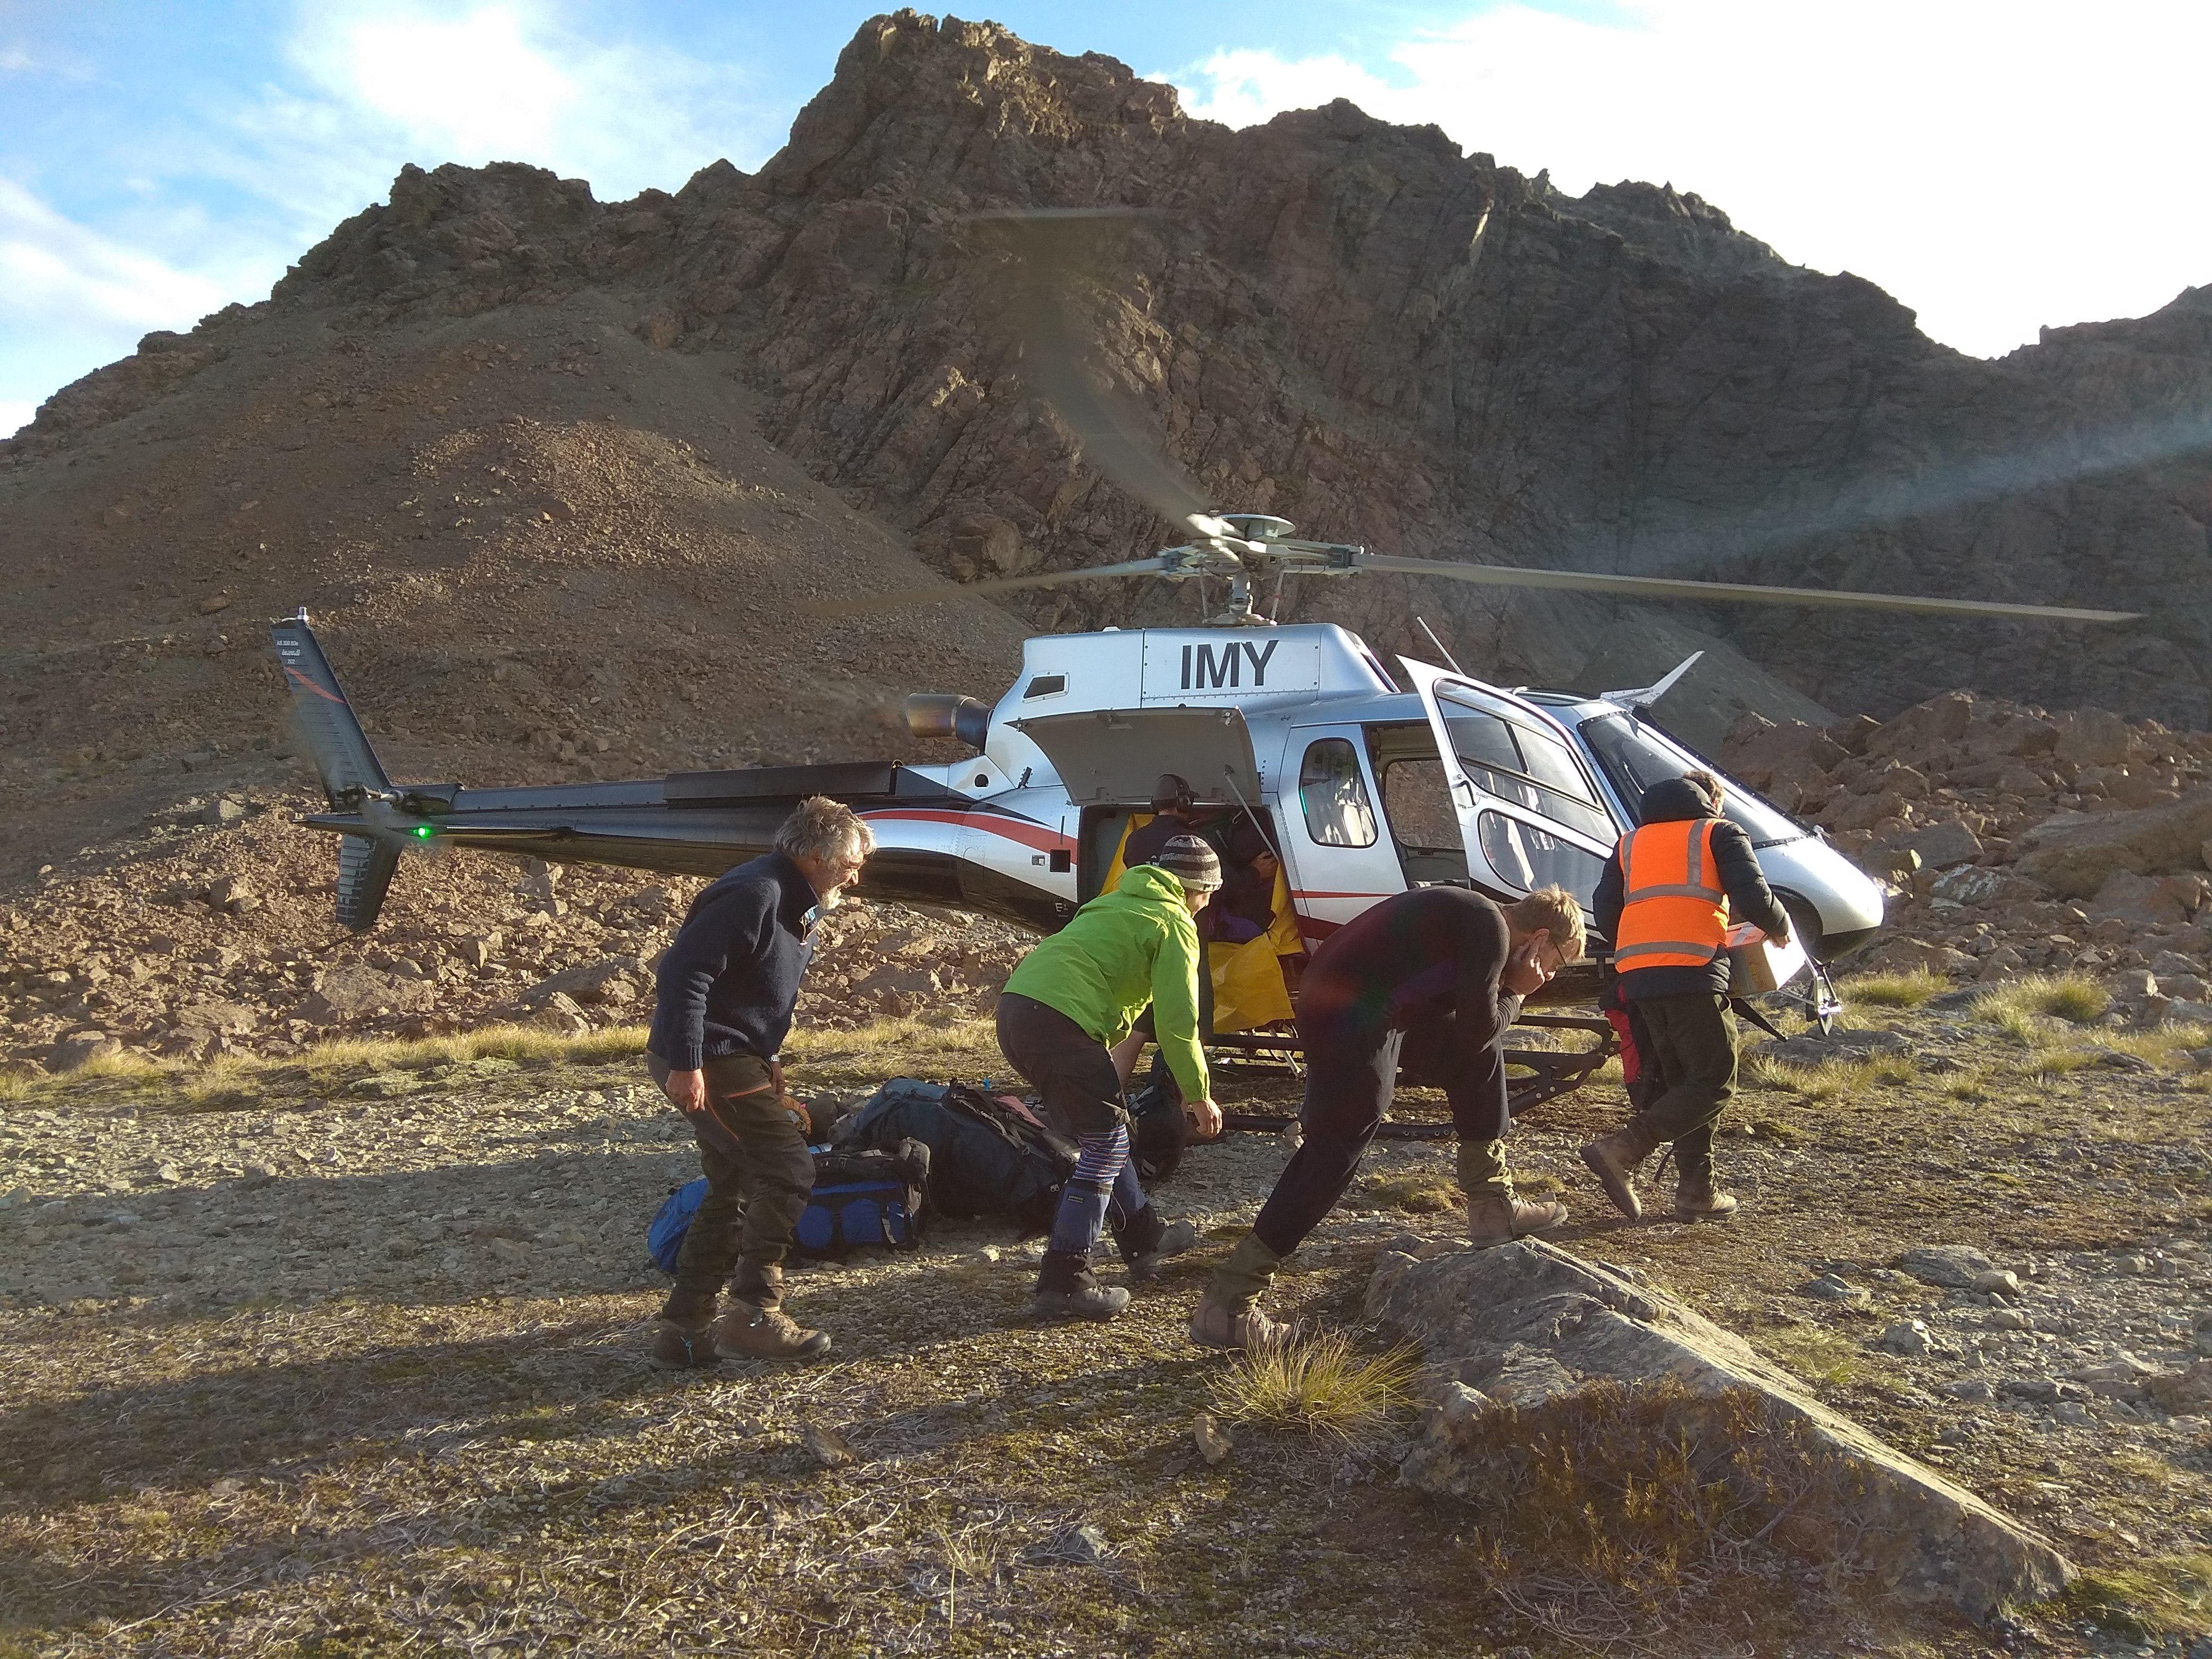 Four people crouched low in front of a helicopter in the mountains